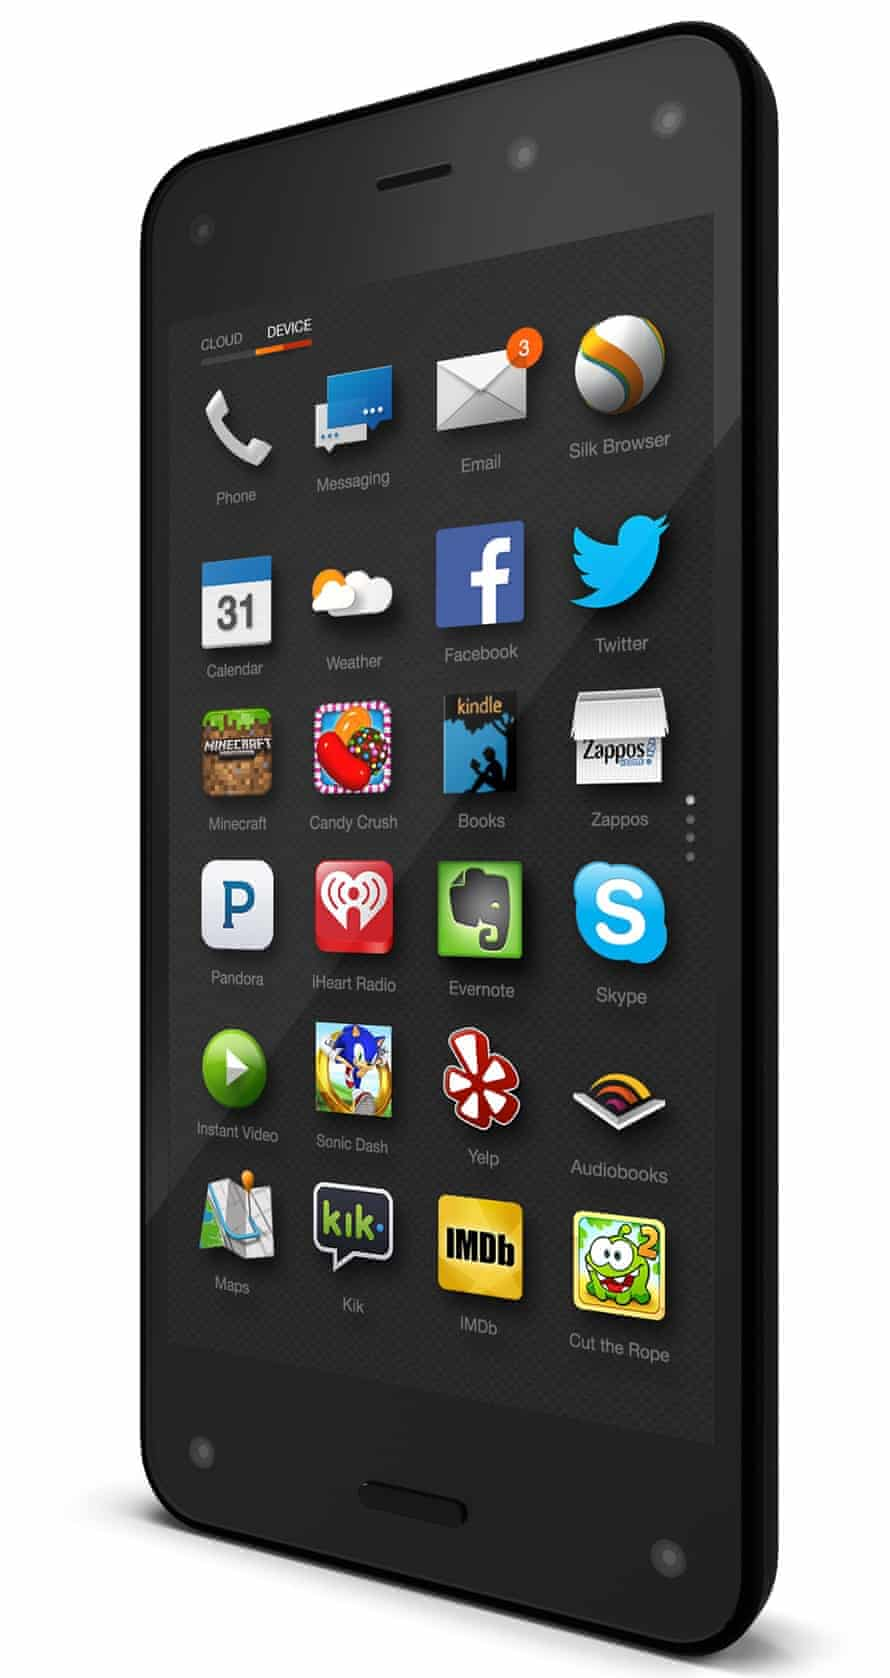 A handout image of the new Amazon Fire phone.